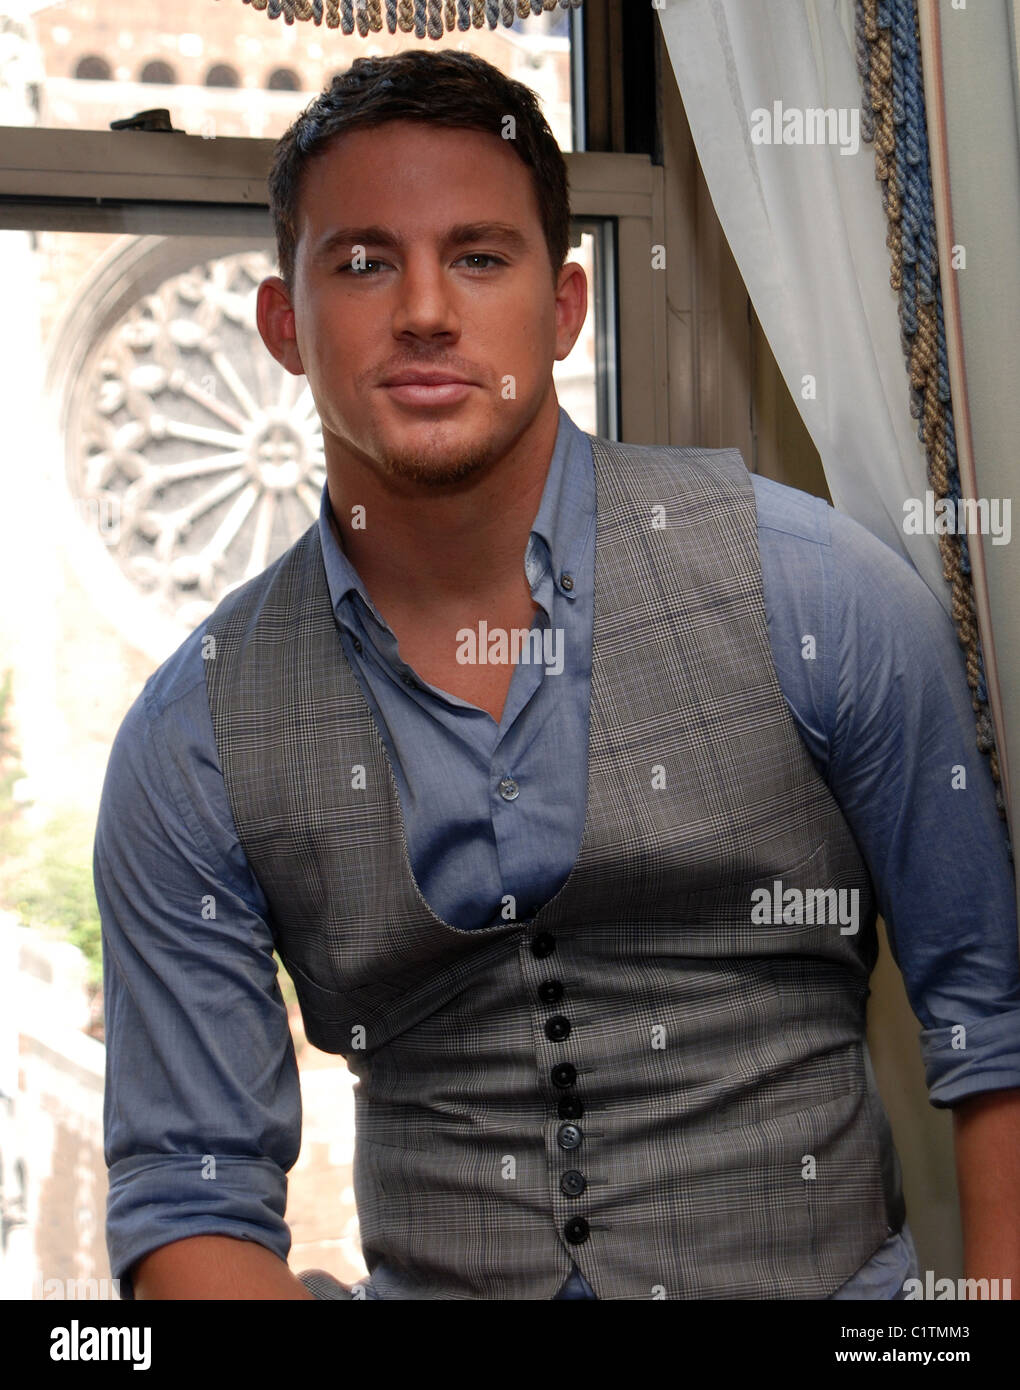 "Channing Tatum ""G.I. Joe: The Rise of Cobra"" Pressekonferenz im The Waldorf Astoria Hotel New York City, Stockbild"